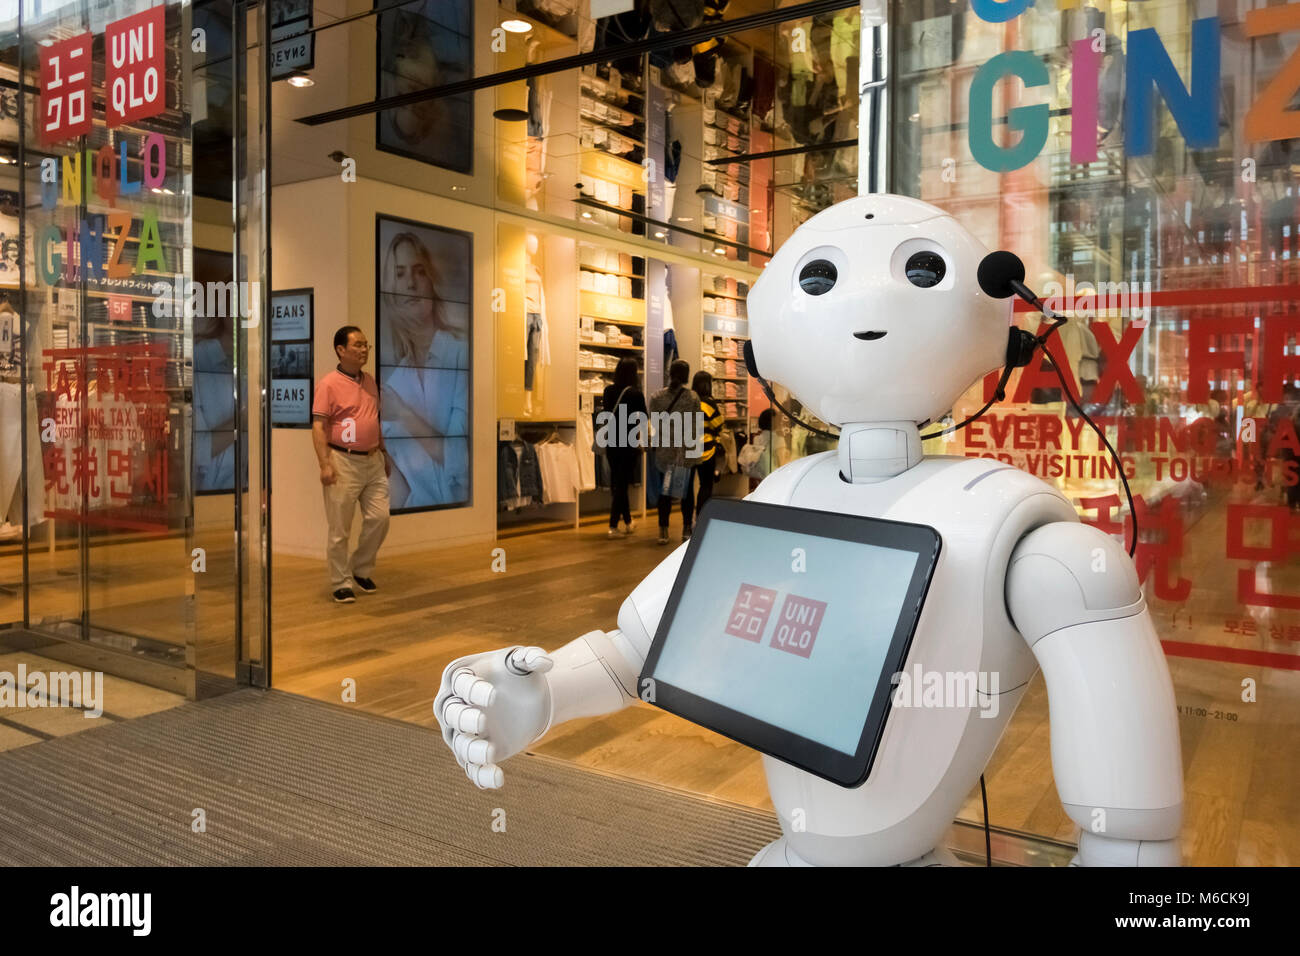 A robot welcomes shoppers to the flagship Uniqlo store in Ginza, Tokyo, Japan - Stock Image